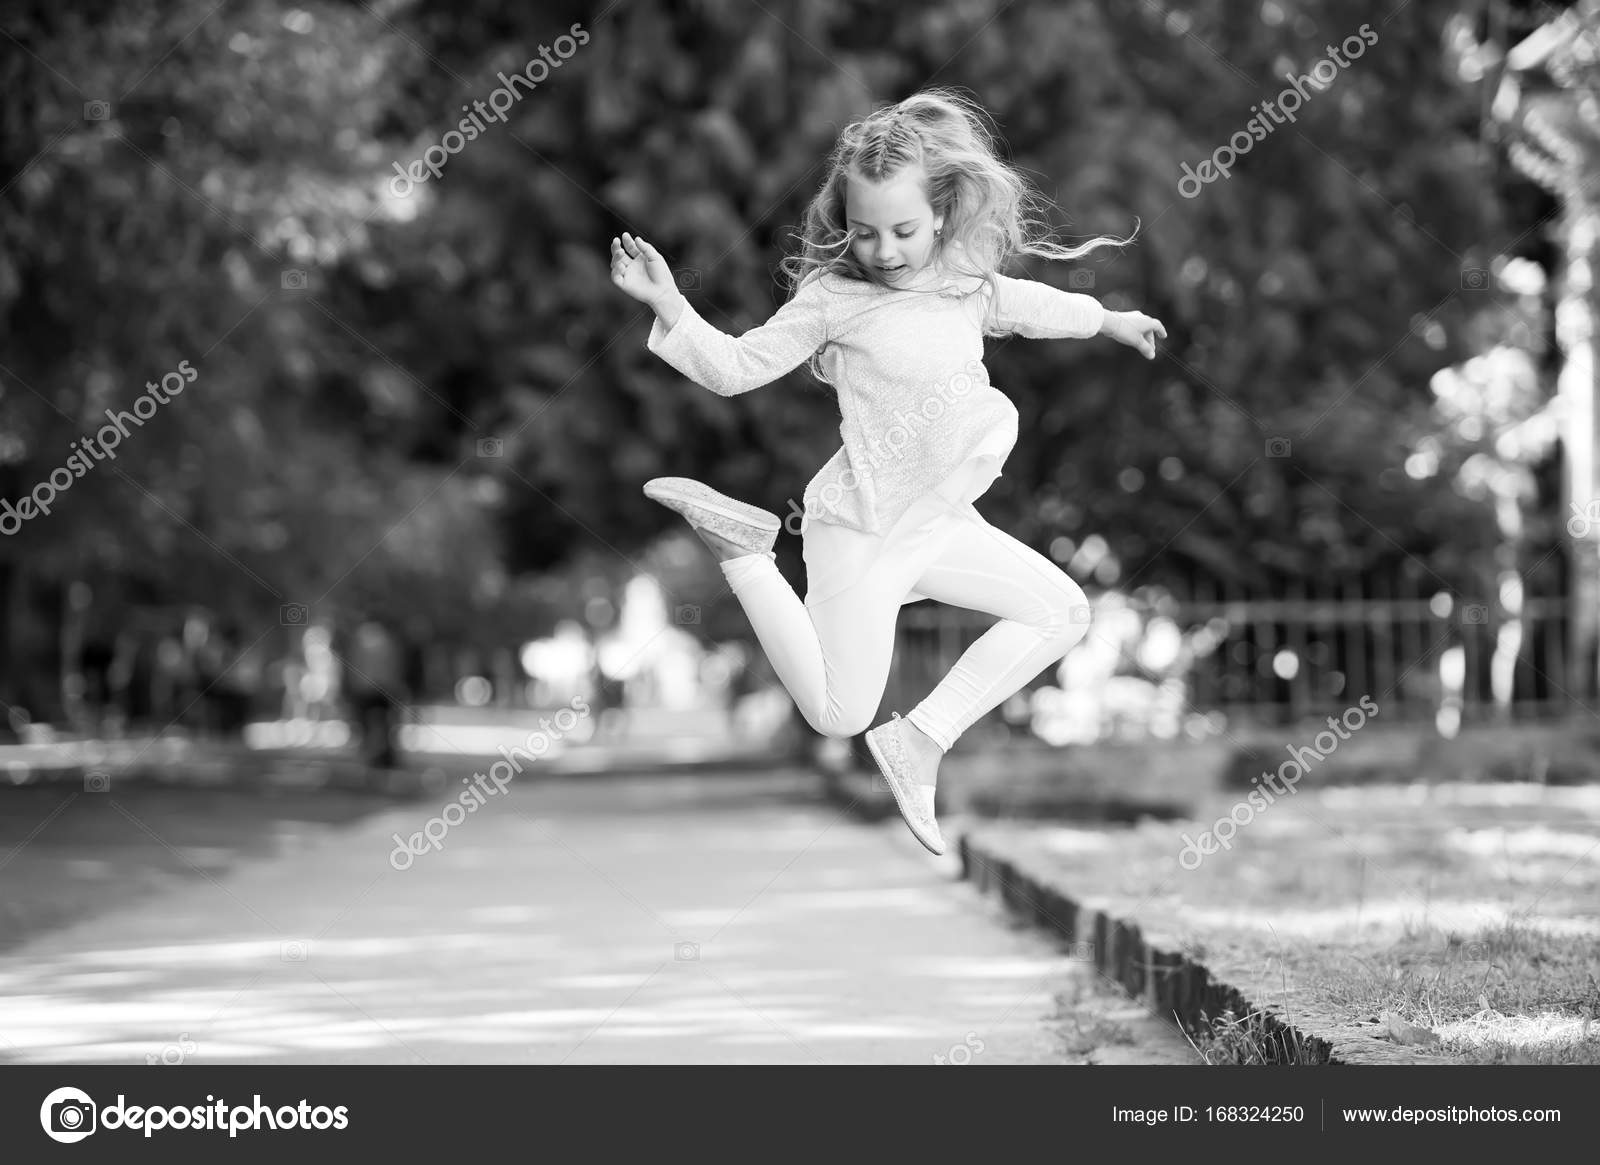 f26208ea Pretty little girl with curly blonde hair jumping on street — Stock Photo